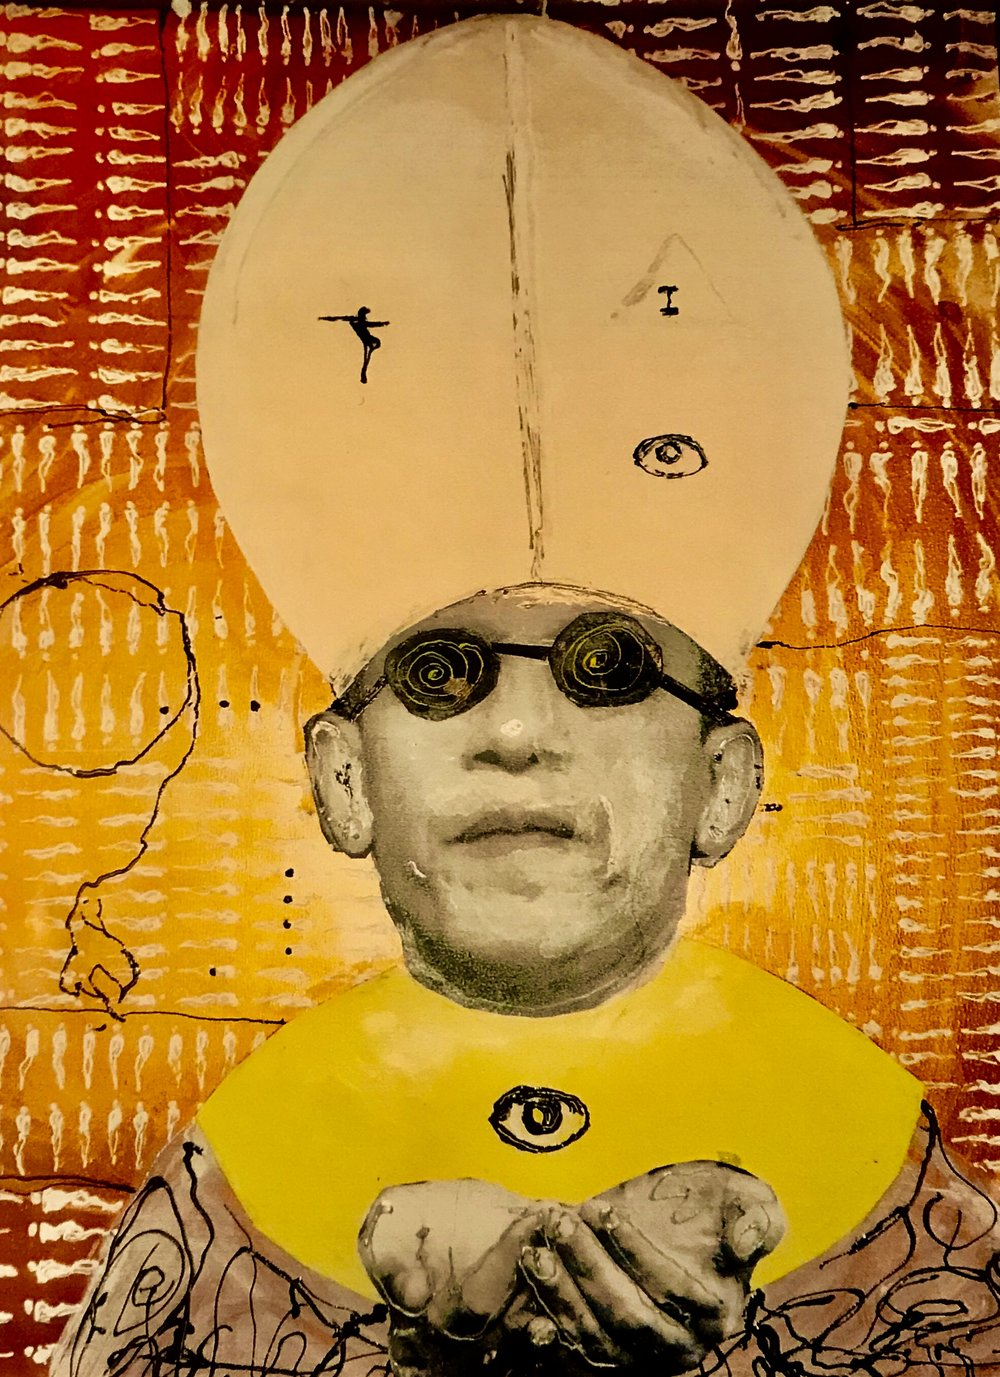 Pope Obama   King of the ''Gauche caviar'' - Ealy Mays, Collage 2009